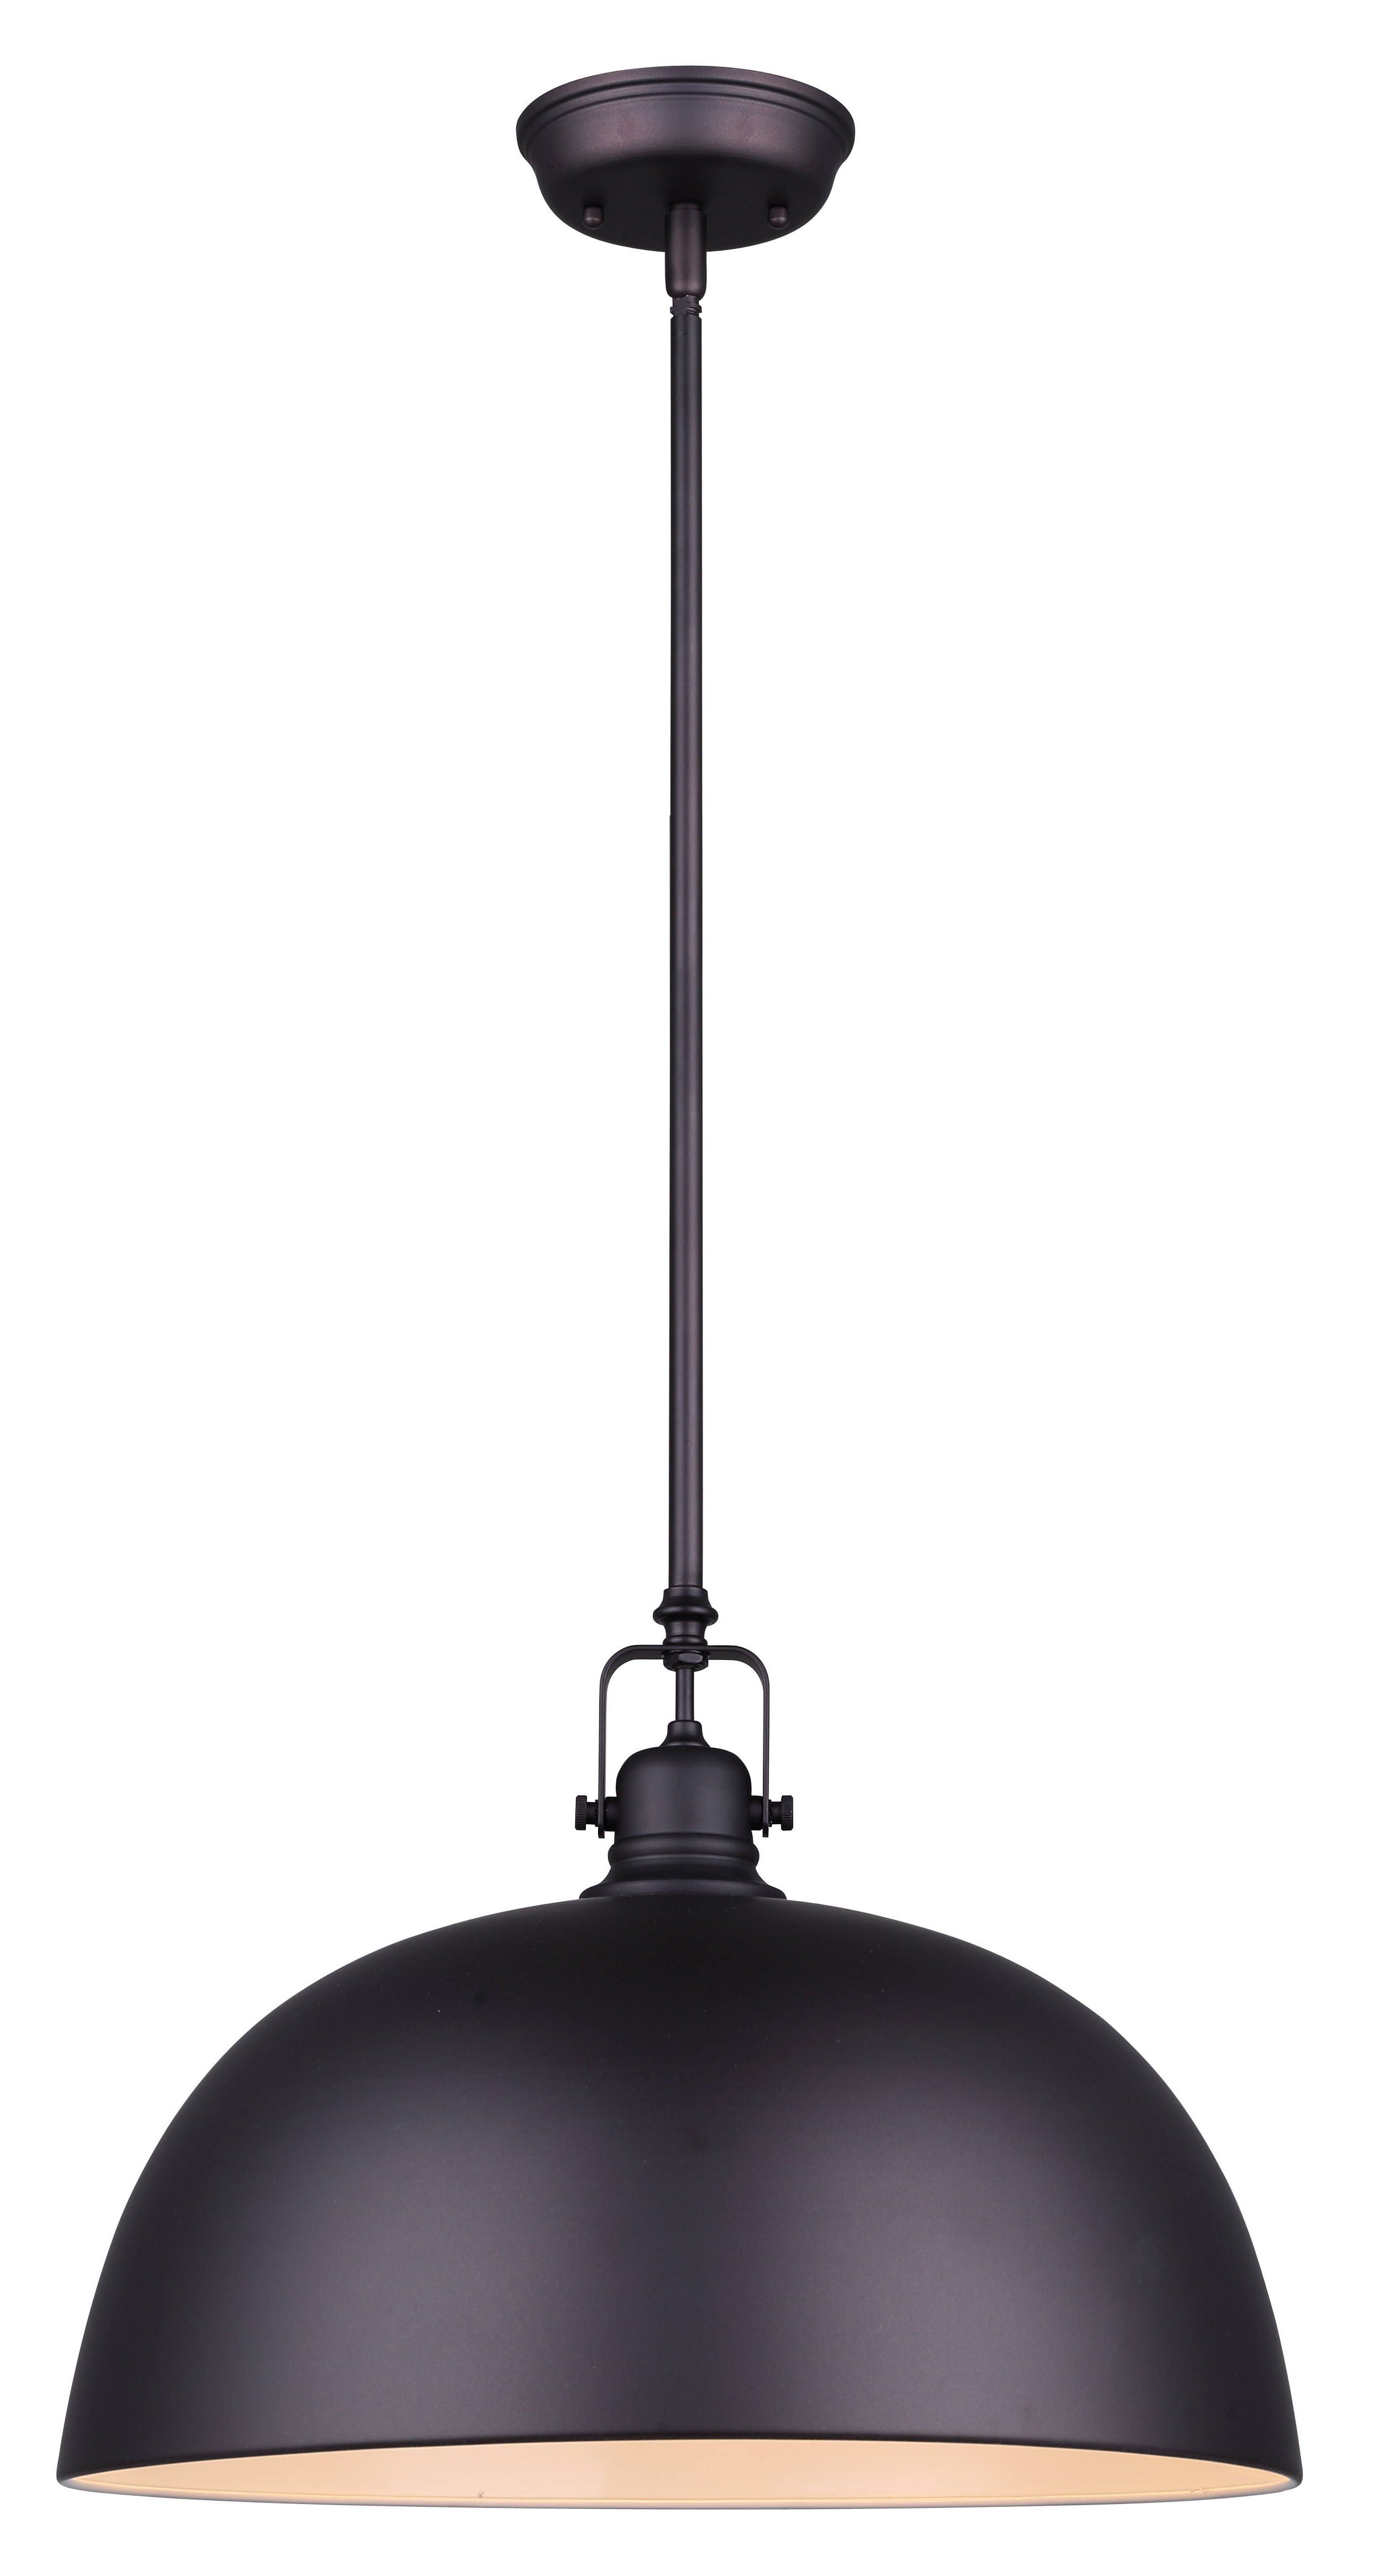 Famous Prange 1 Light Single Globe Pendants Throughout Southlake 1 Light Single Dome Pendant (View 25 of 25)